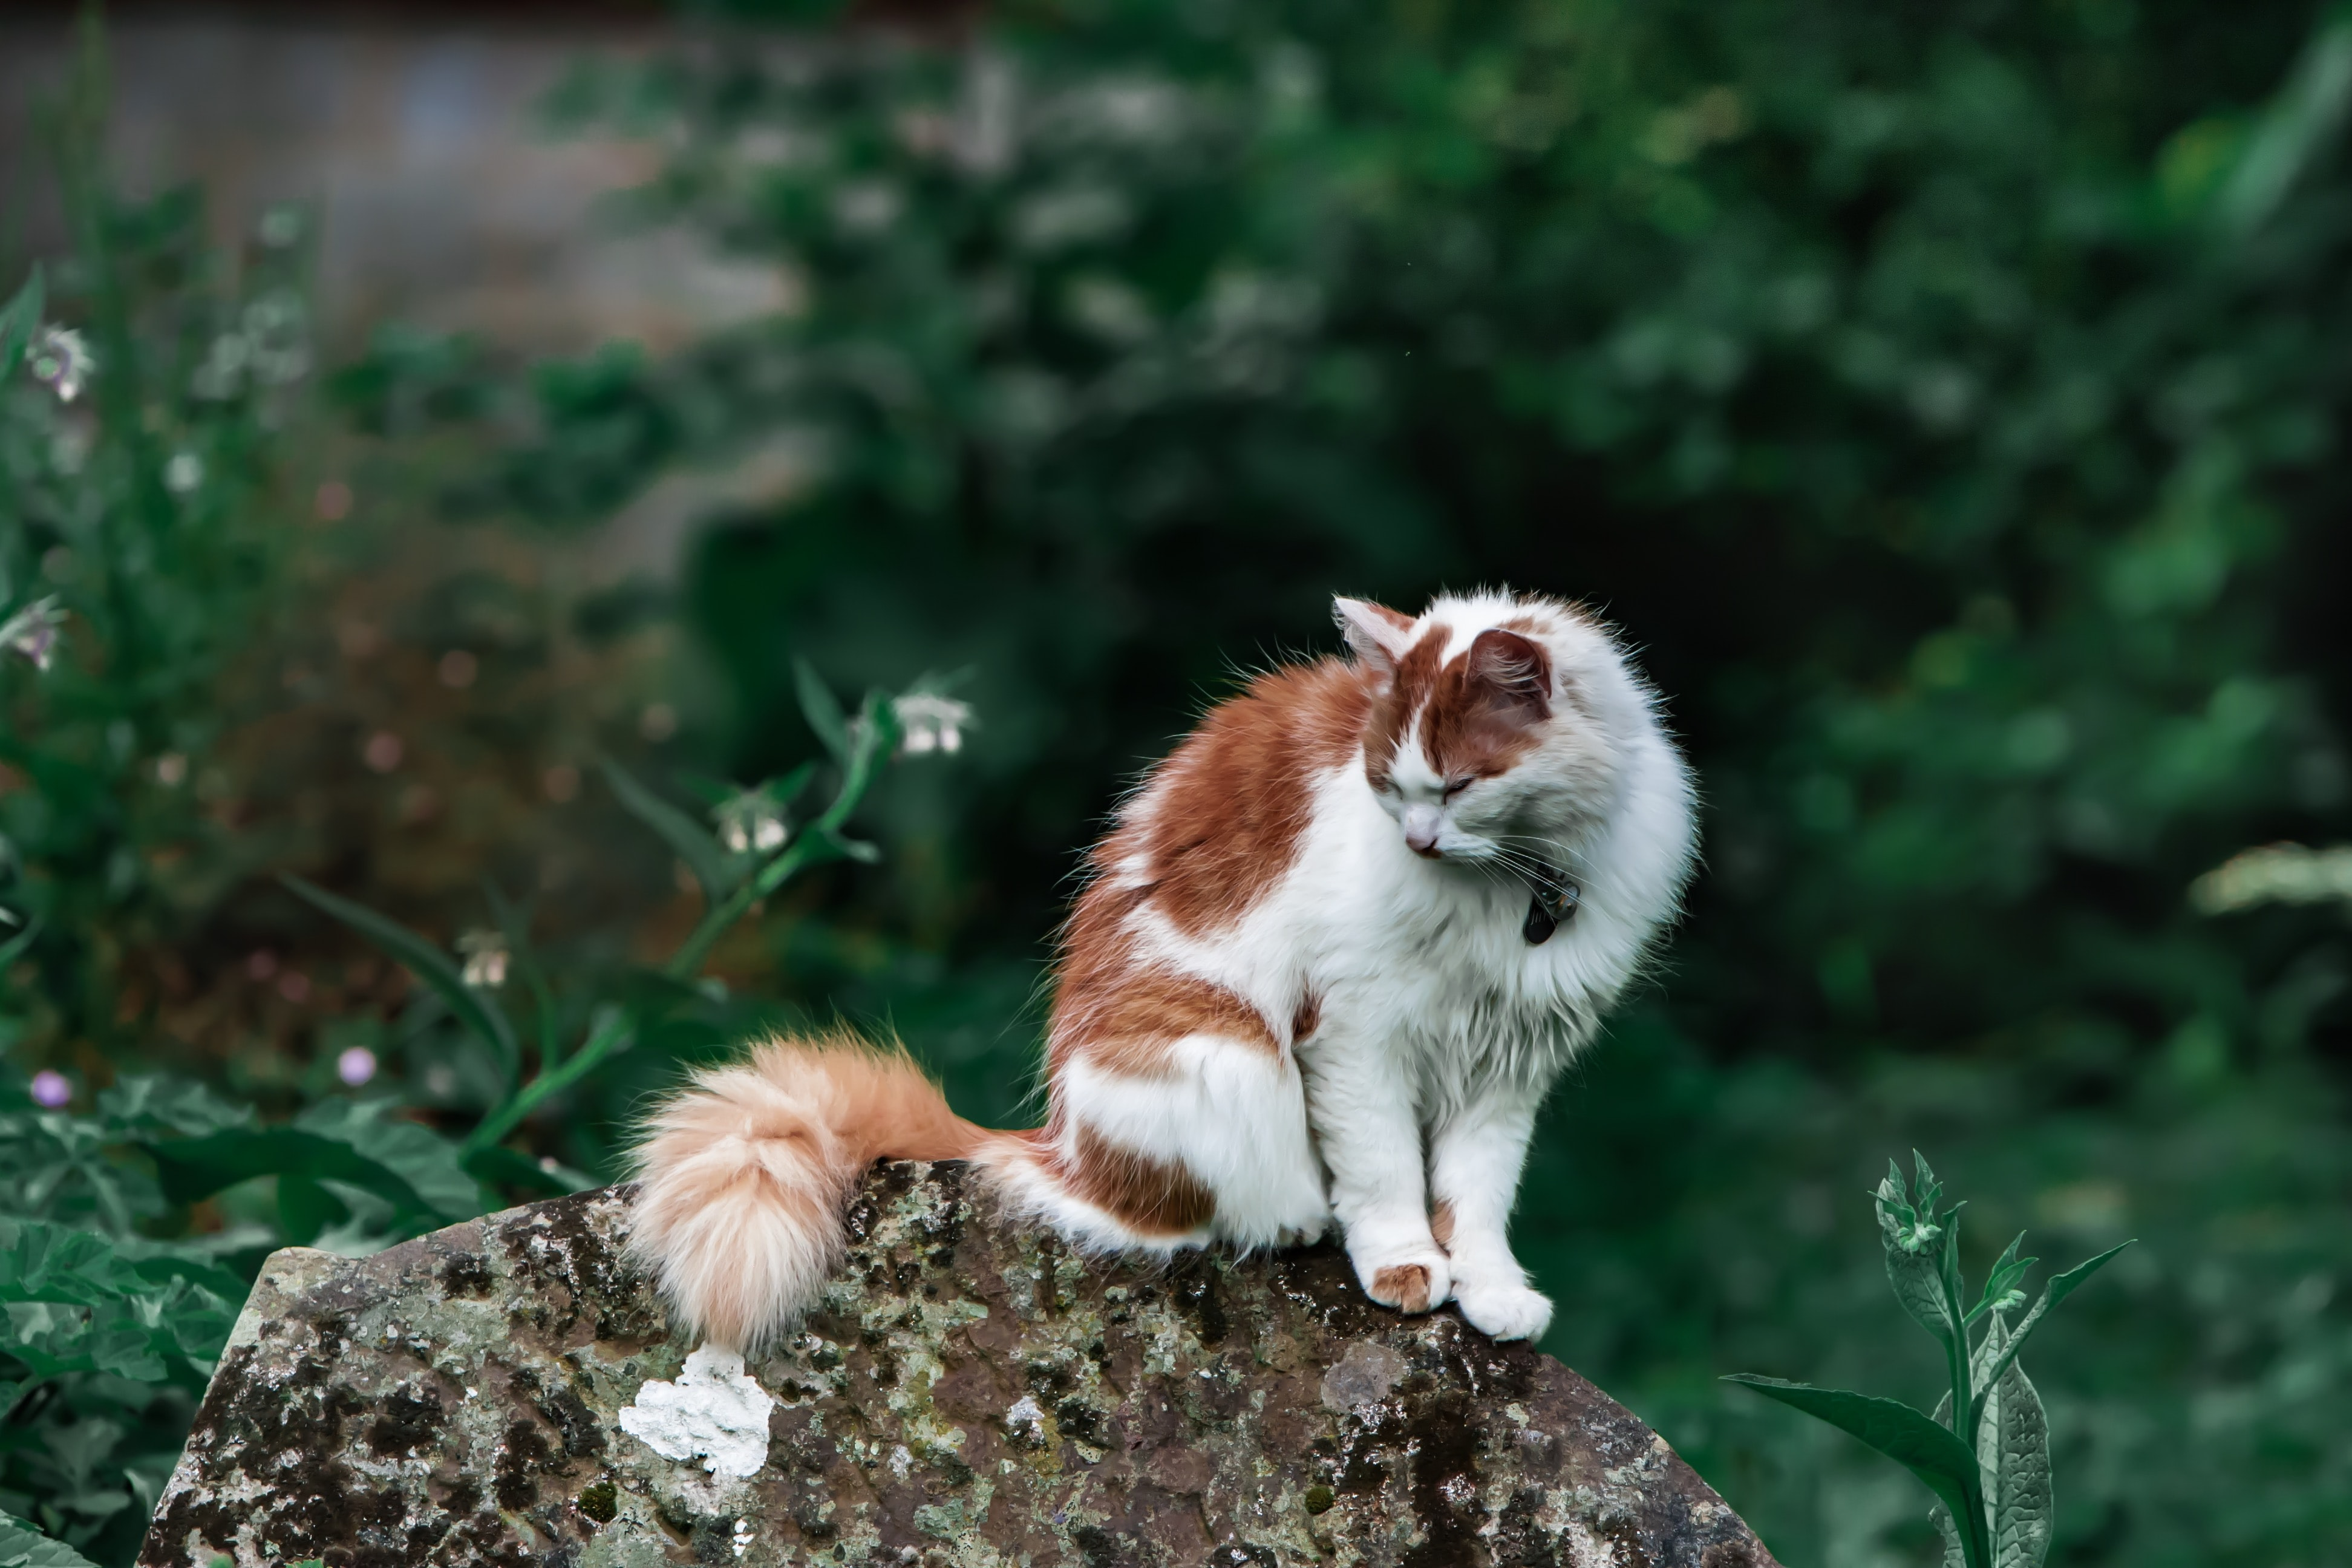 brown and white cat standing on stone fragment